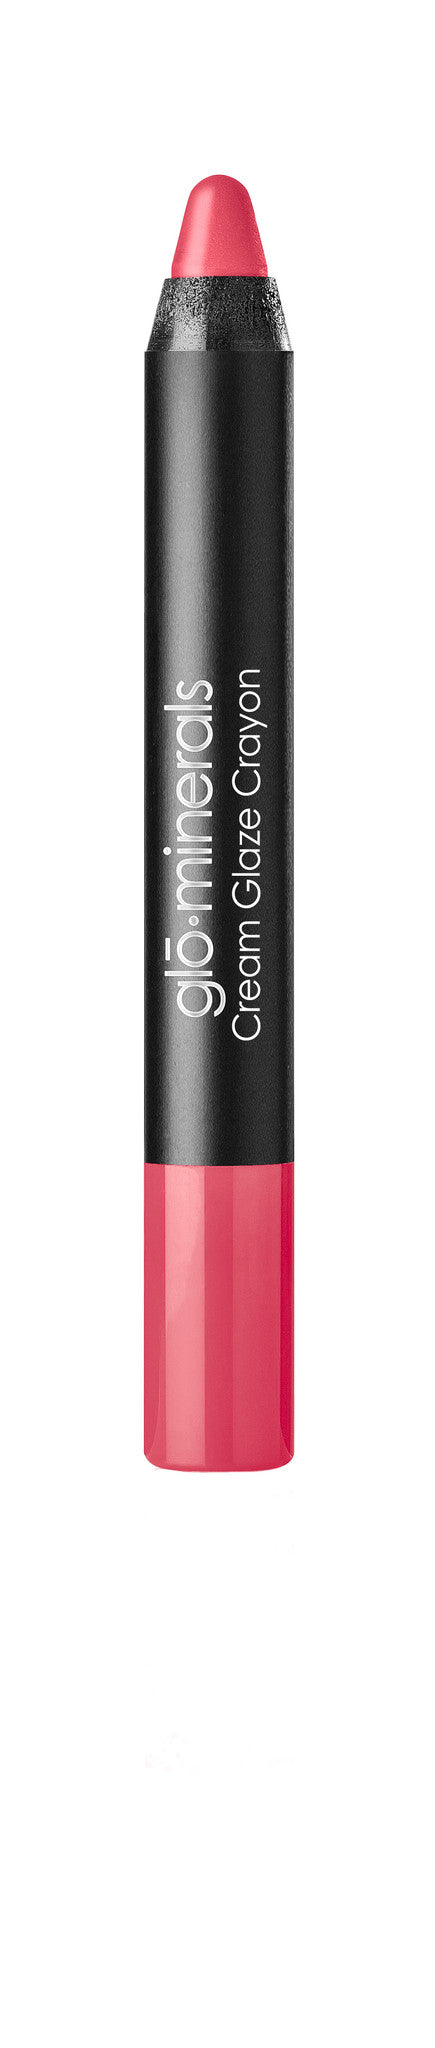 Glo Skin Beauty - Cream Glaze Crayon